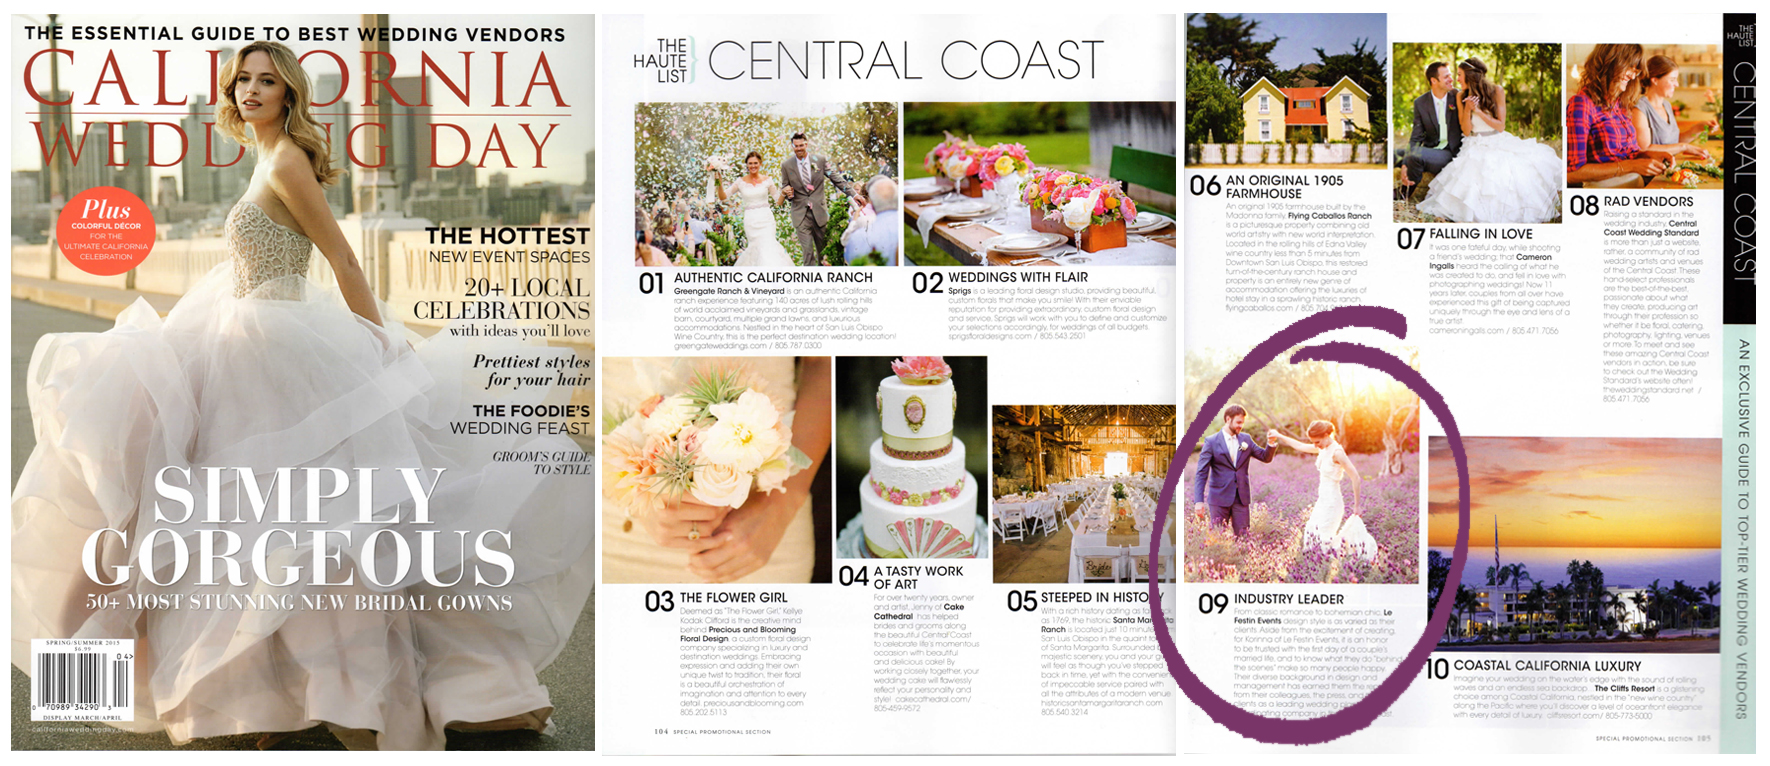 CALIFORNIA WEDDING DAY MAGAZINE